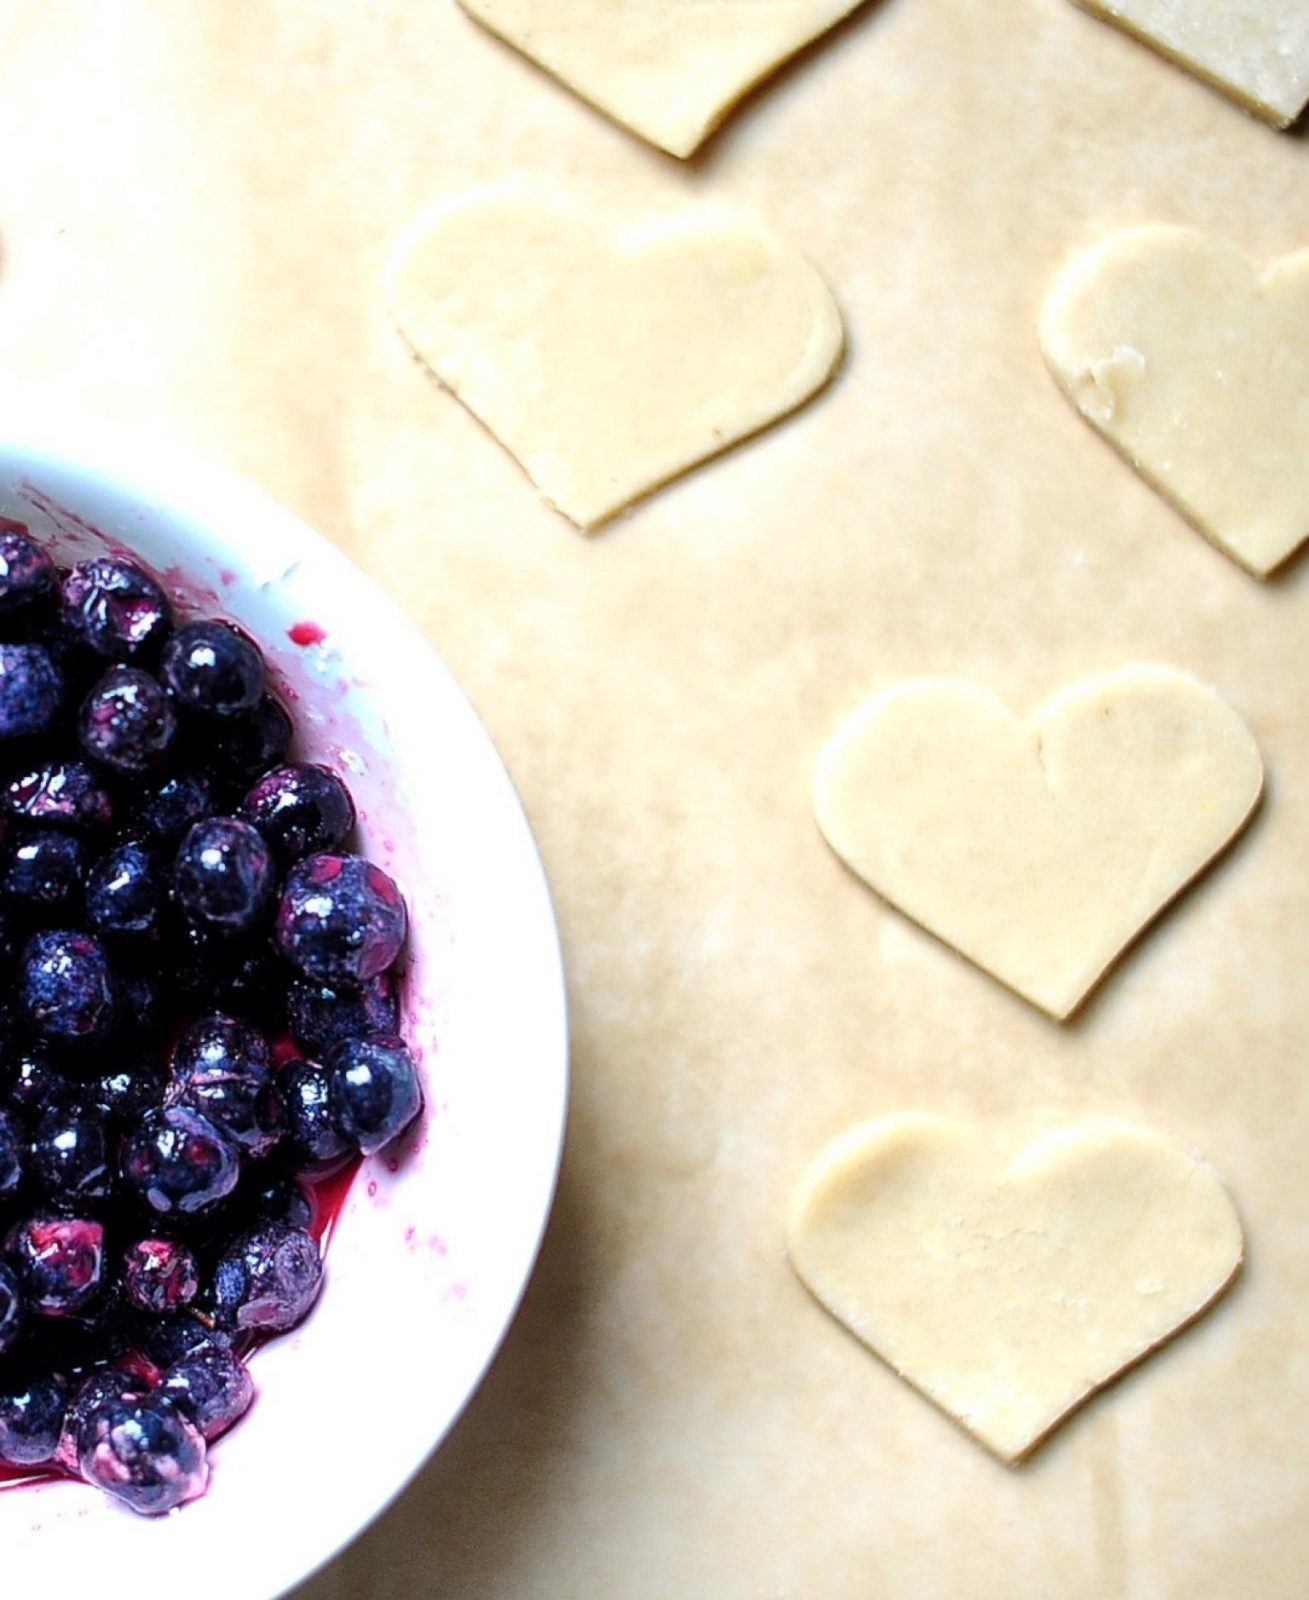 Vegan heart shaped blueberry pop-tarts, dough.